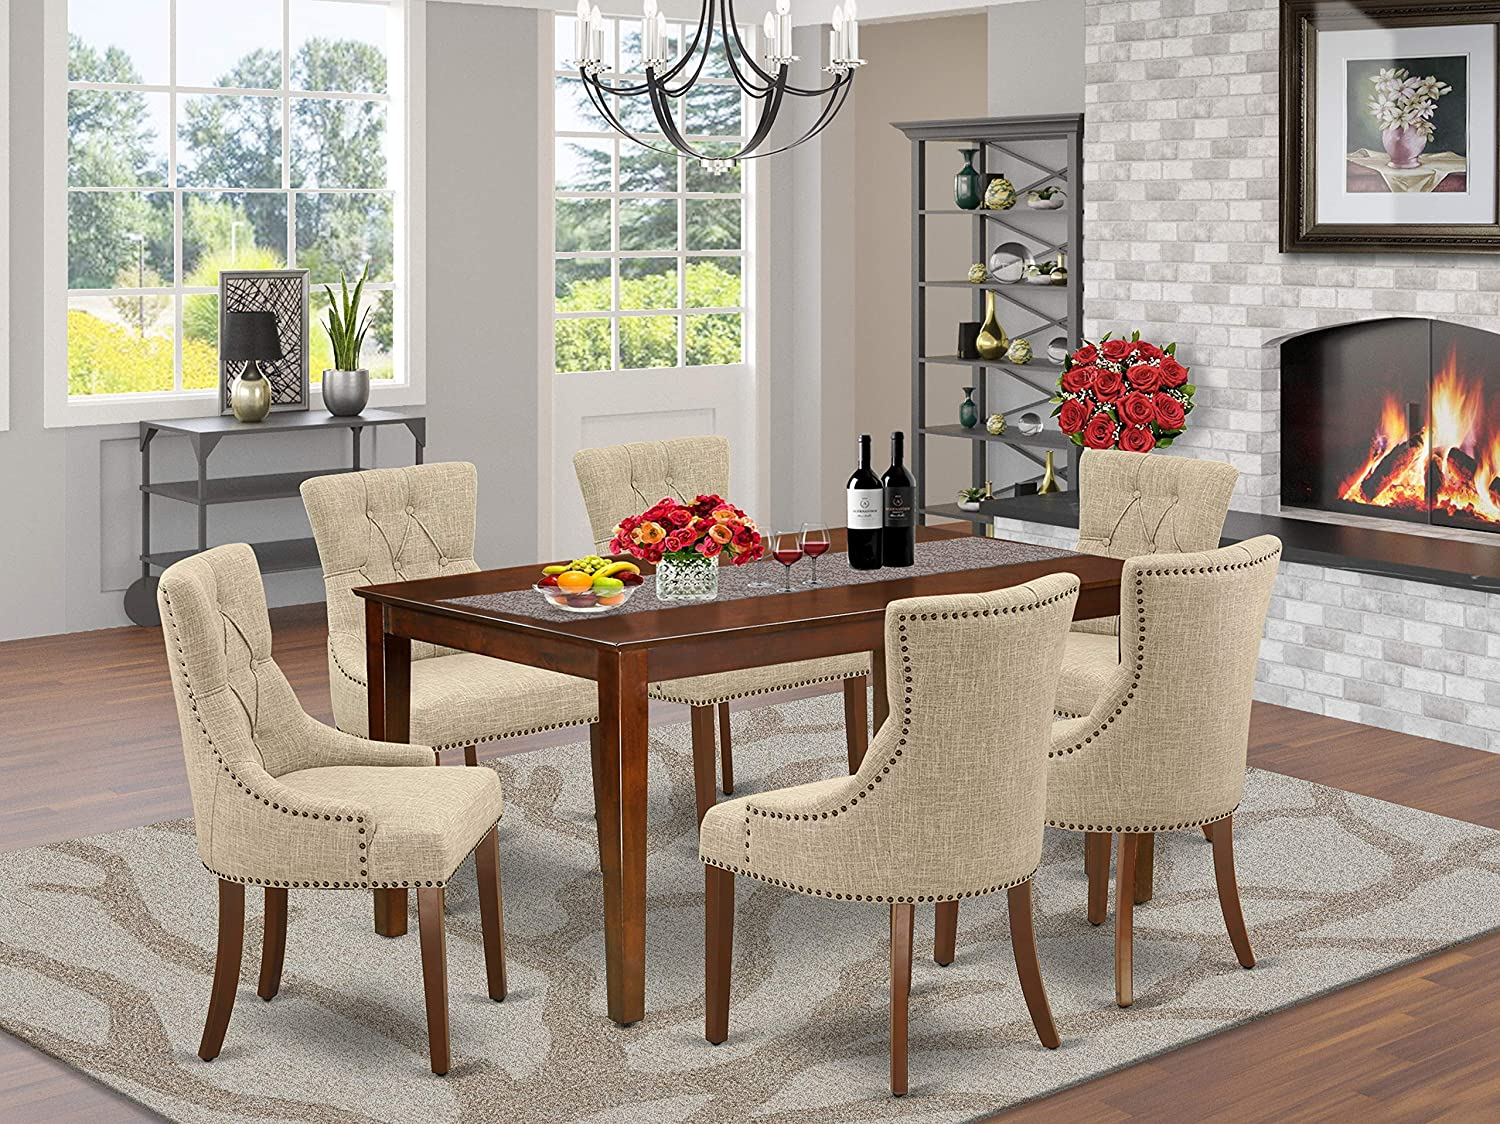 East West Furniture 7Pc Dinette Set Includes a Rectangular Kitchen Table and Six Parson Chairs with Doeskin Fabric, Mahogany Finish